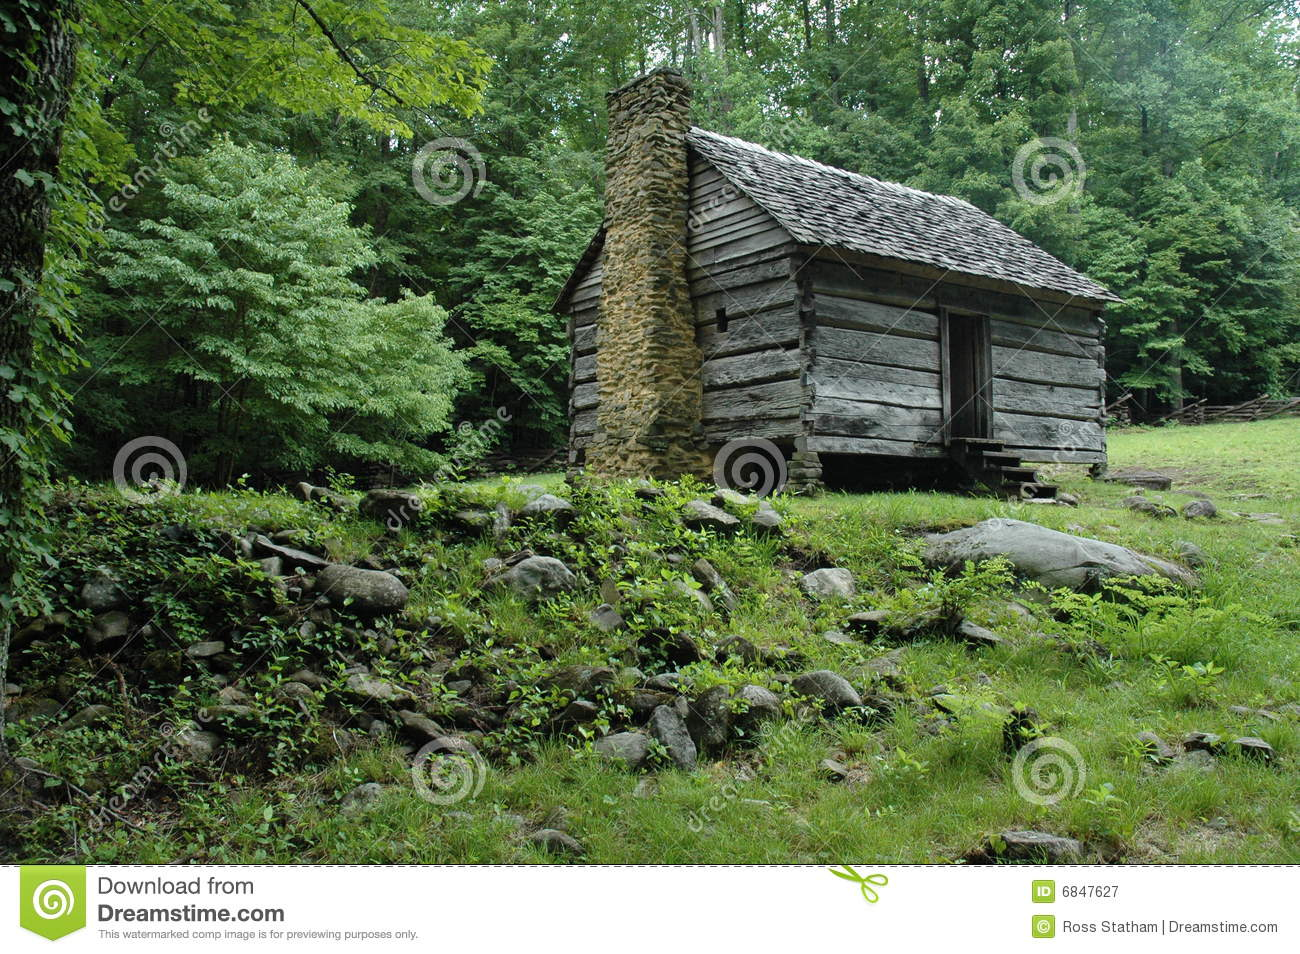 Appalachian mountain log cabin stock image image of for Appalachian mountain cabins